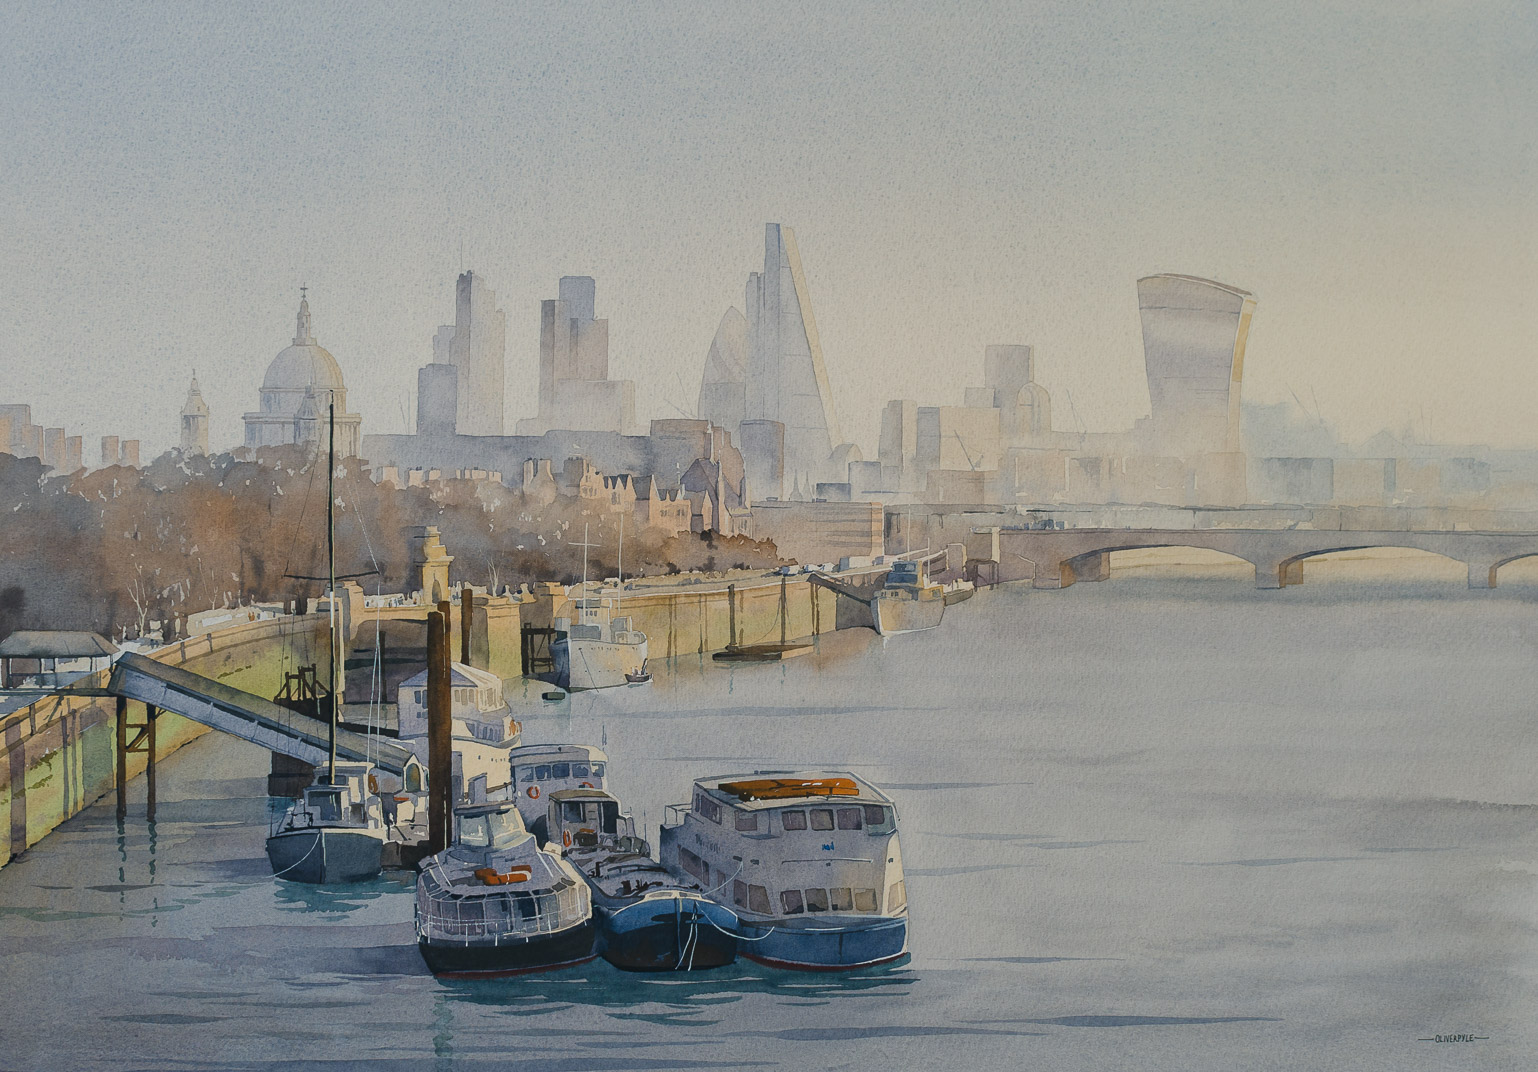 Downstream, from Waterloo Bridge